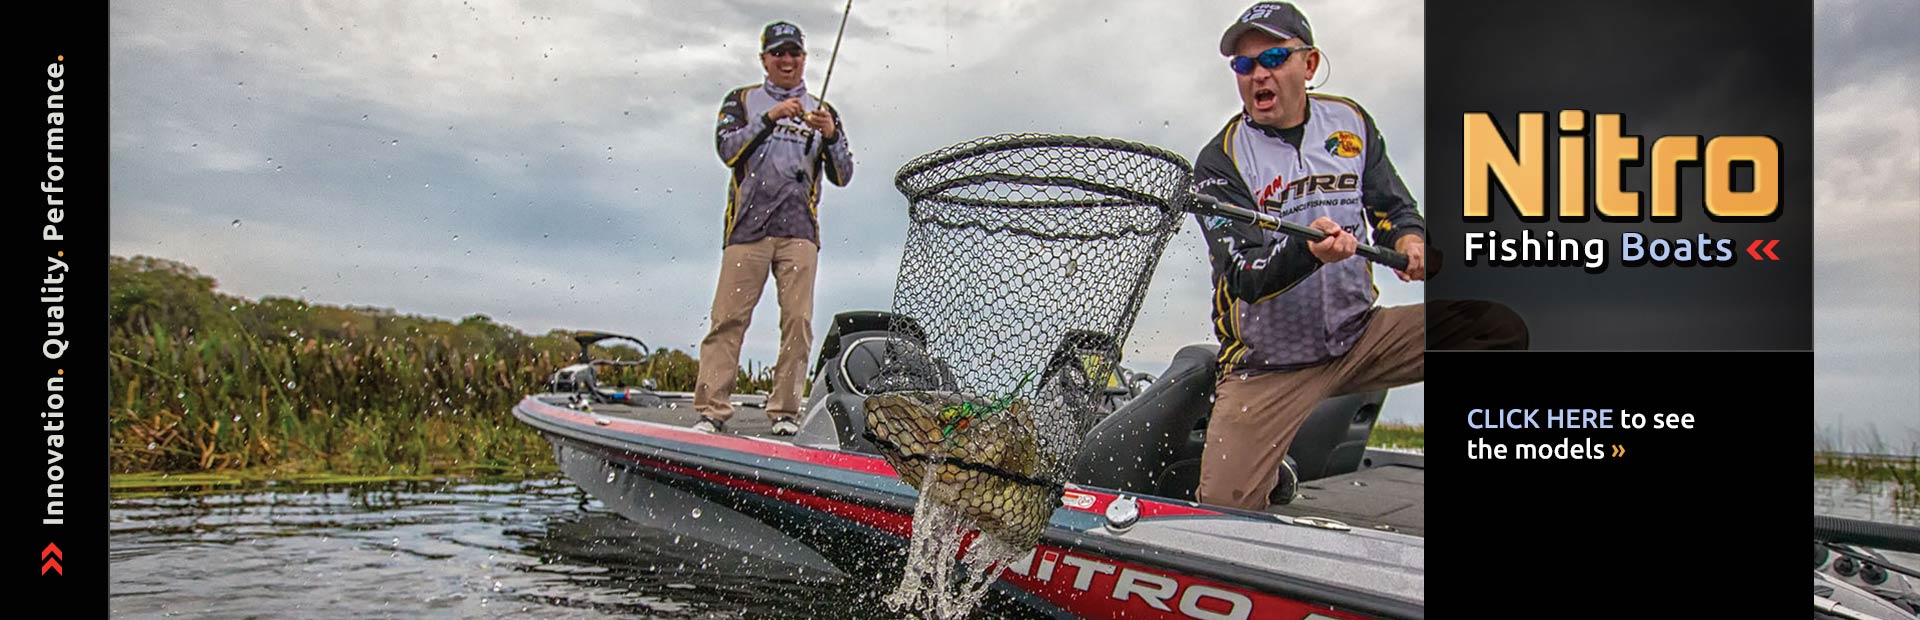 Nitro Fishing Boats: Click here to view the models.